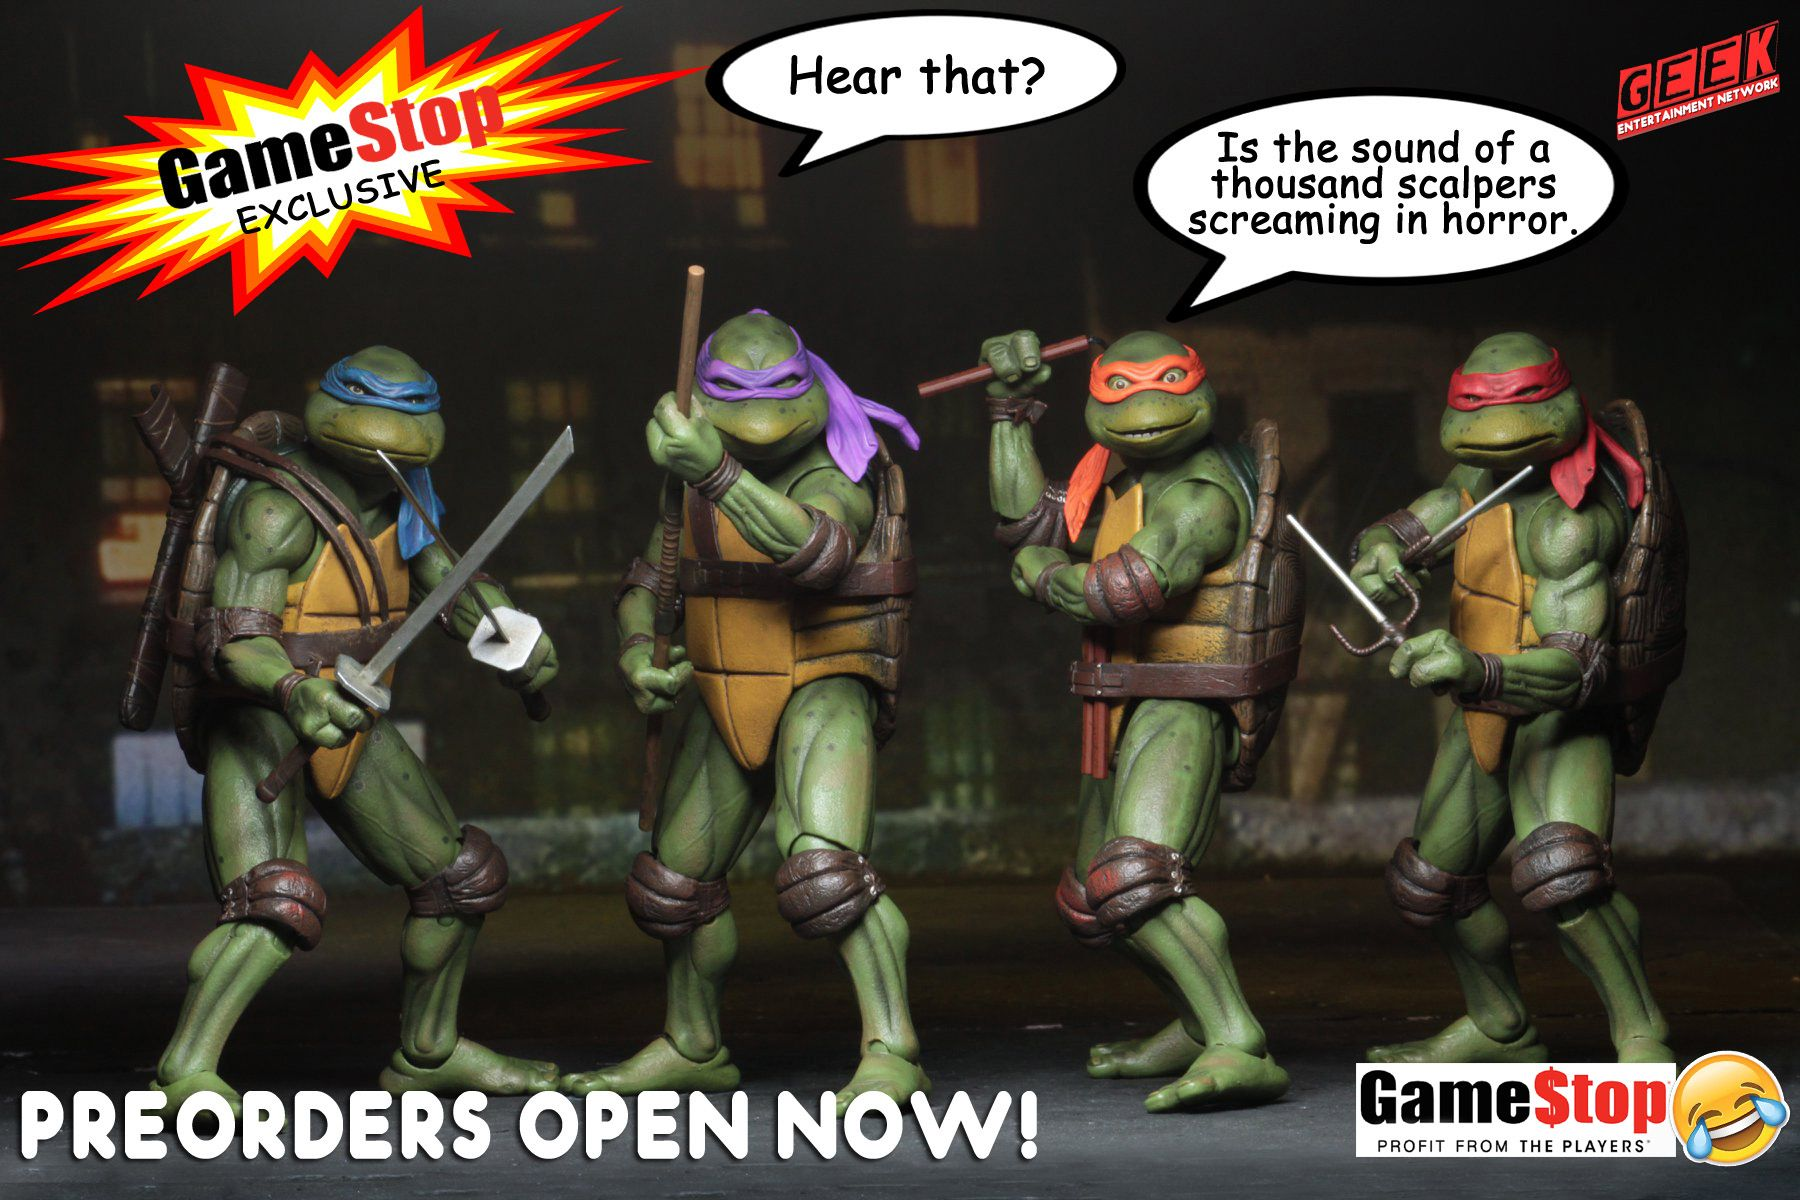 Neca ninja turtles will be available at gamestop in the us